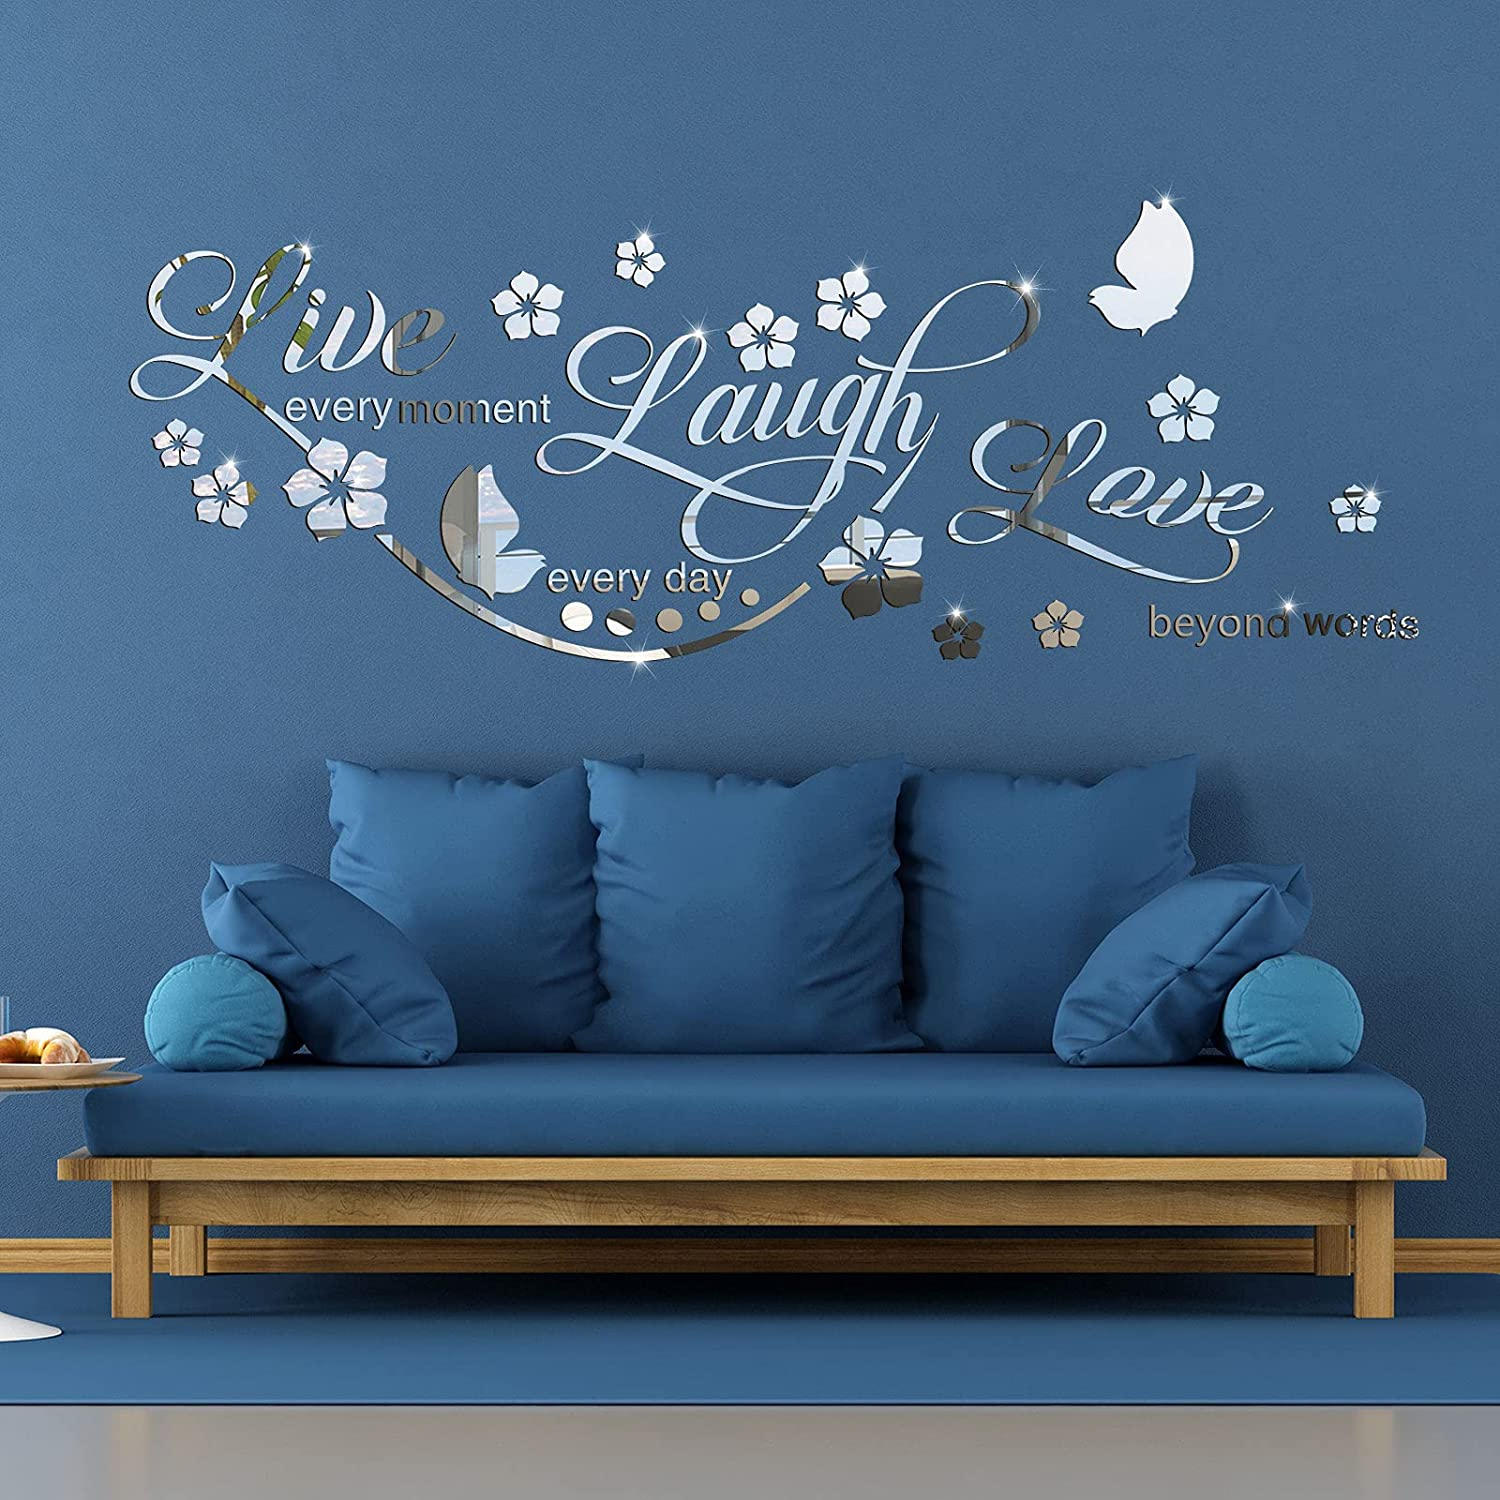 3D Acrylic Mirror Wall Decor Stickers Live Laugh Letter Quotes Wall Stickers Removable Family Wall Decals Motivational Family Flower Butterfly Mirror Stickers for Office Dorm Home Mirror Wall